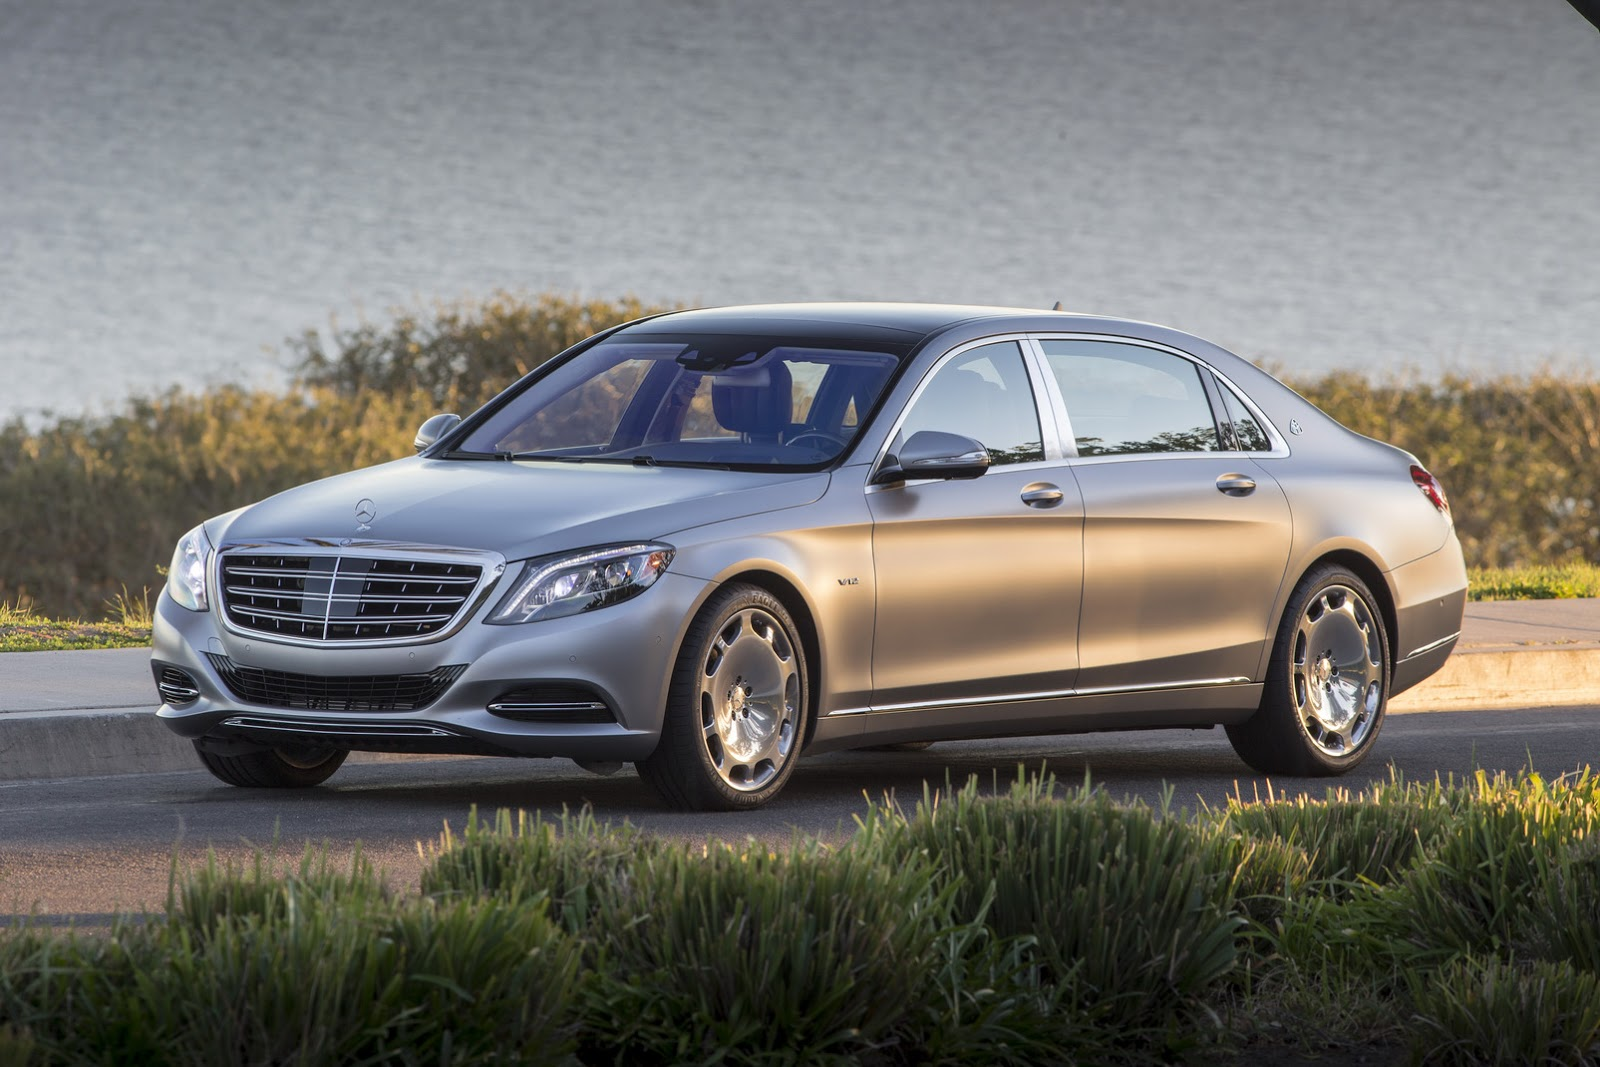 Get To Know The 2016 Mercedes Maybach S600 In 57 New